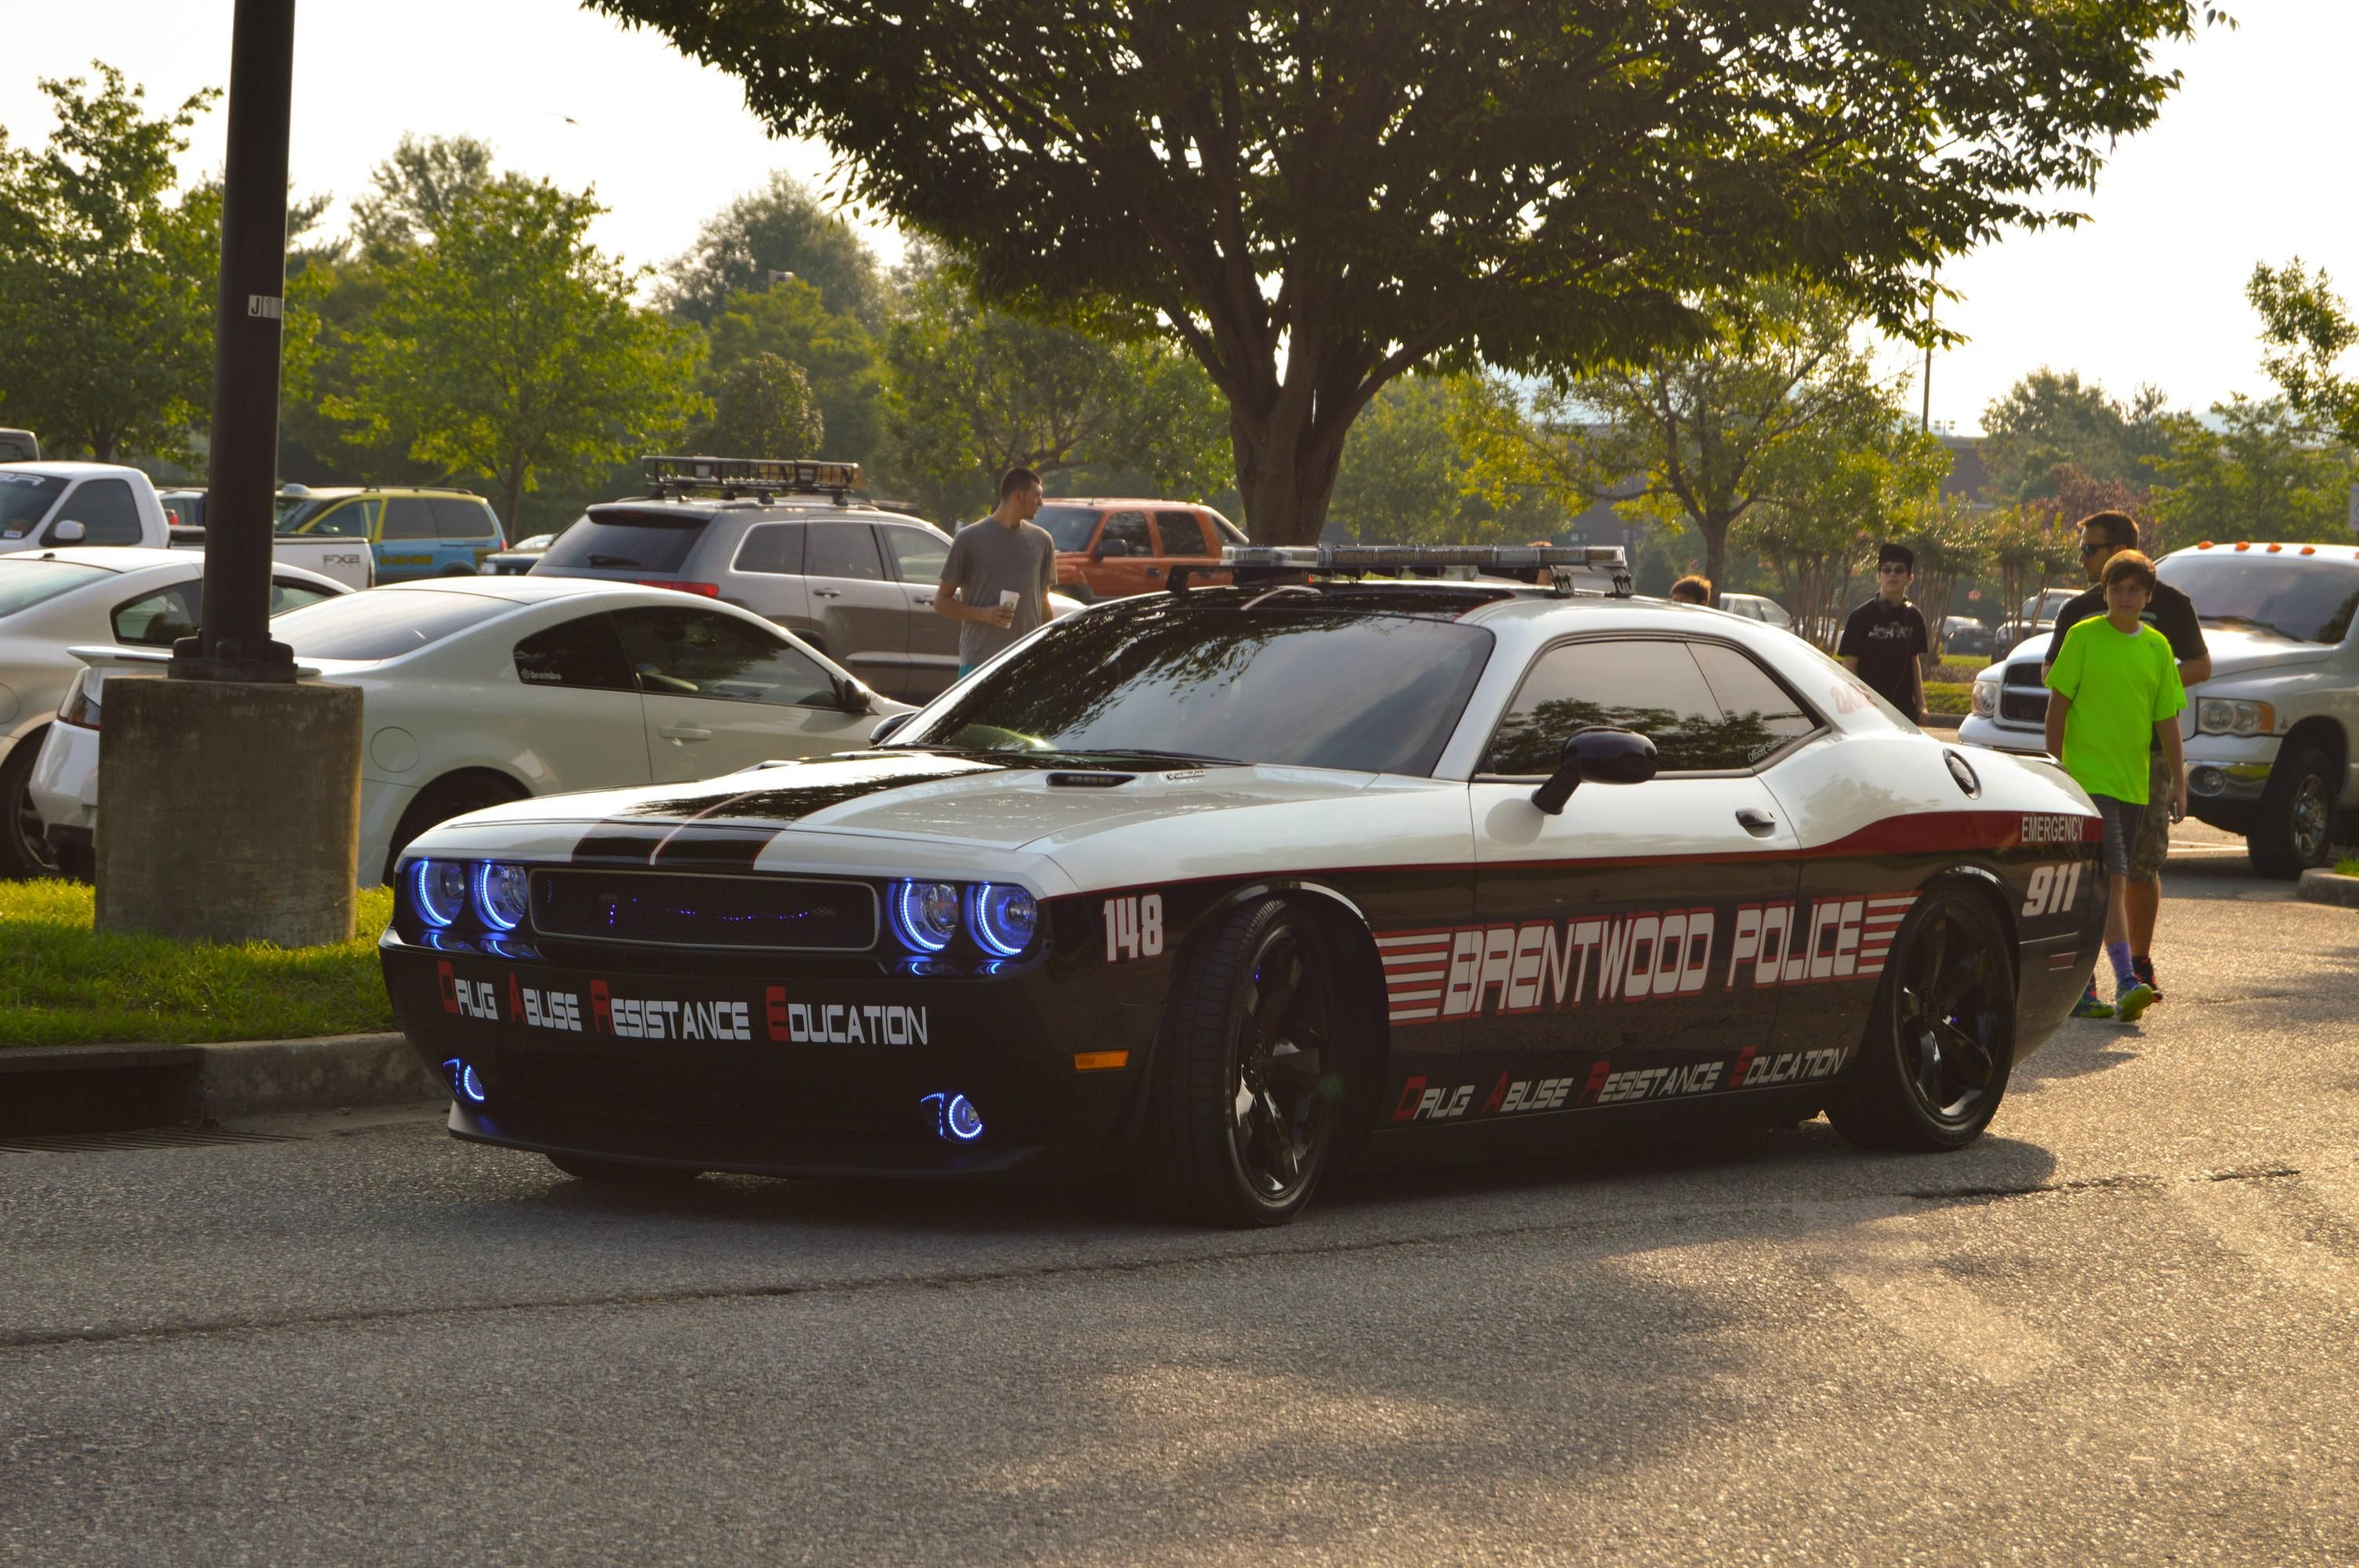 d a r e dodge challenger police car vehicles you love pinterest police cars dodge. Black Bedroom Furniture Sets. Home Design Ideas